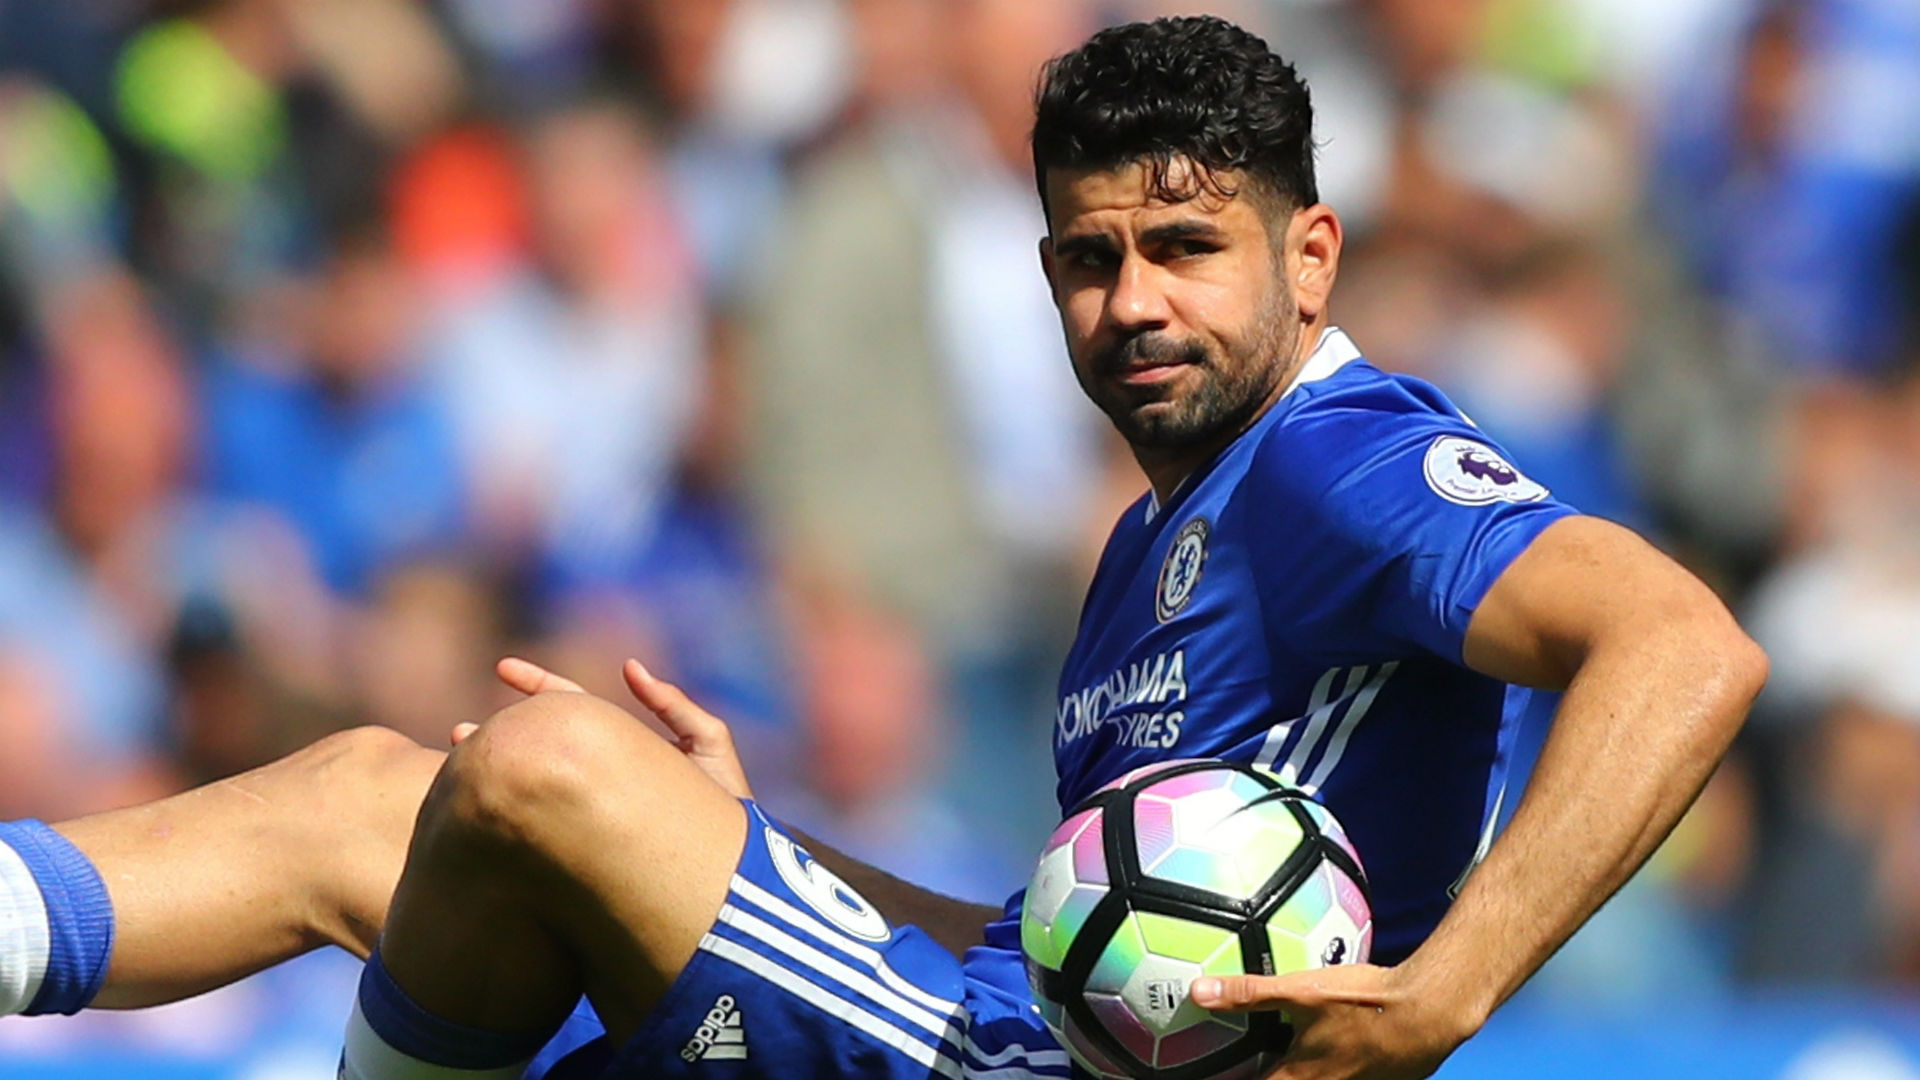 Diego Costa: Chelsea trades striker to Atletico Madrid